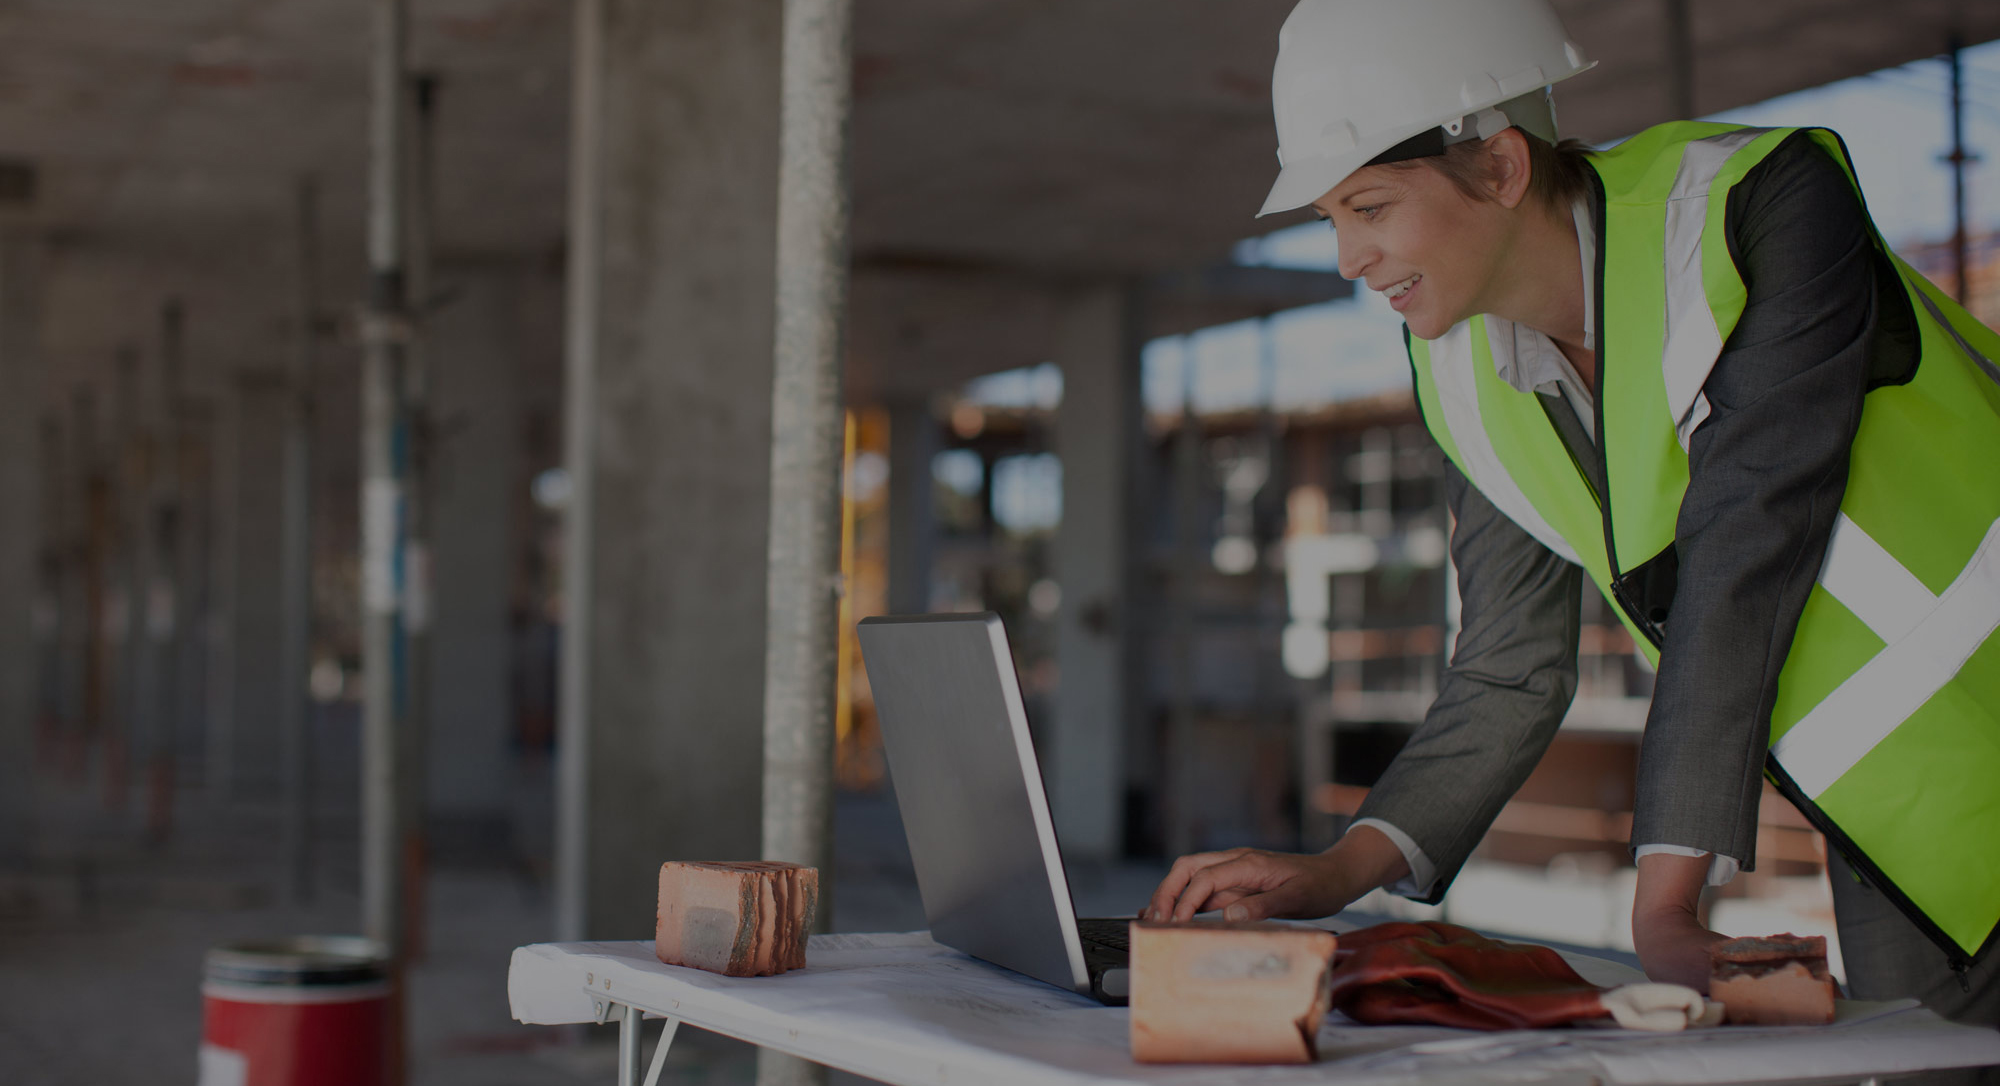 woman-construction-worker-with-computer